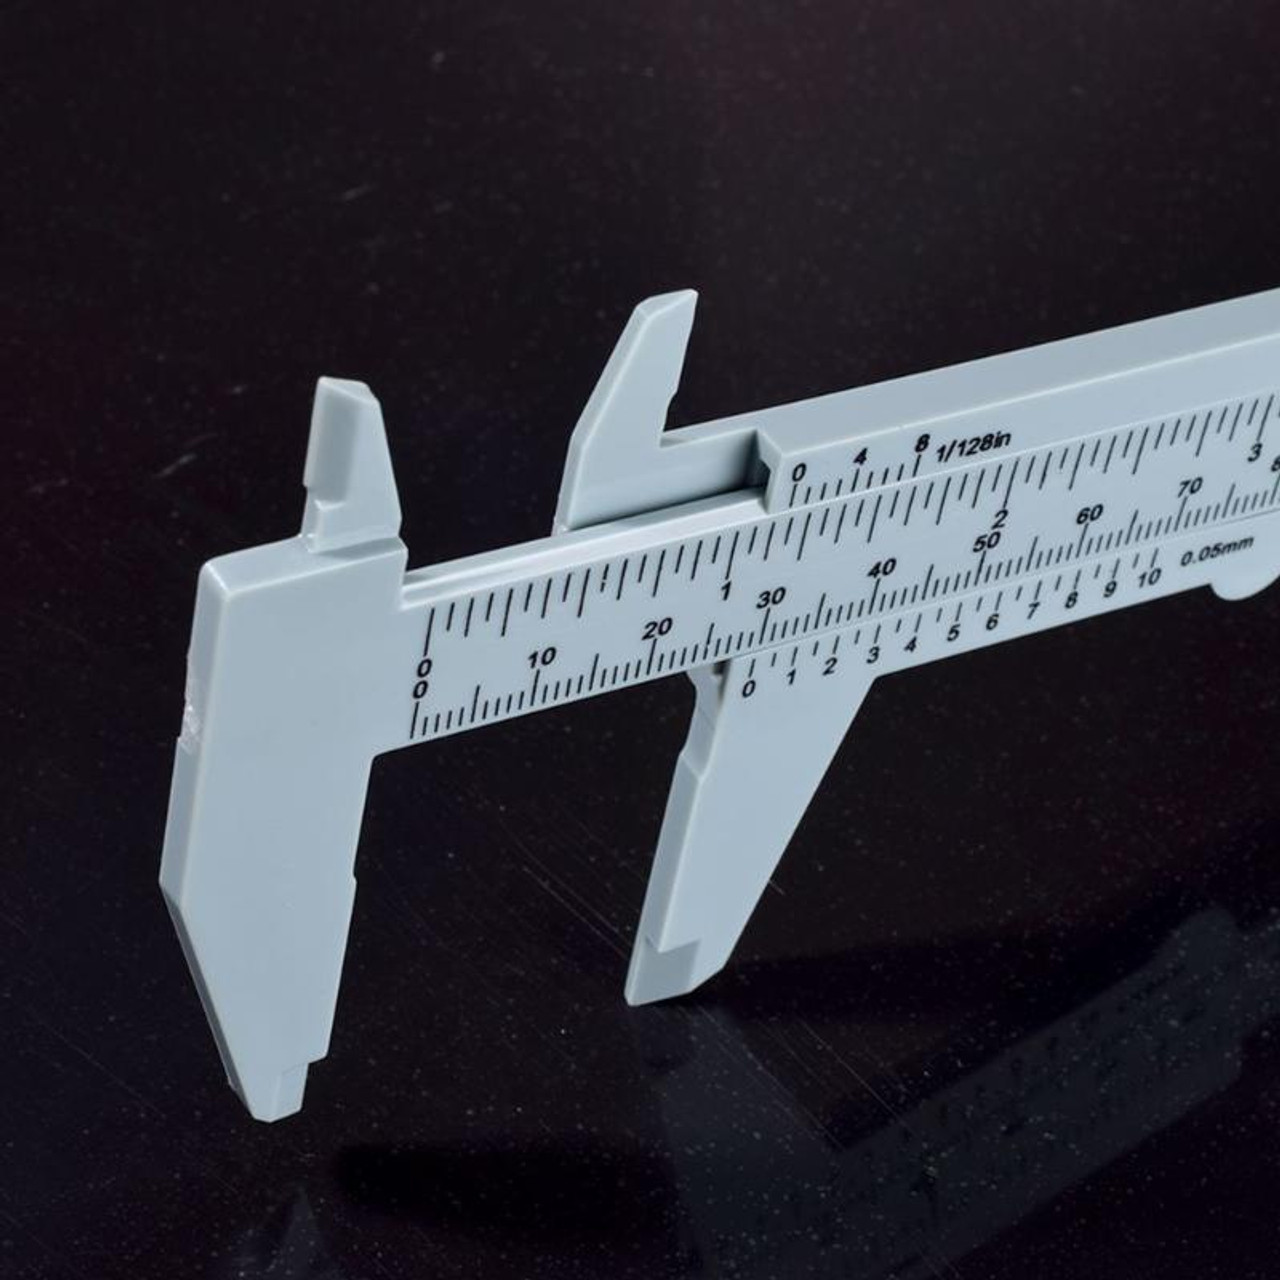 Caliper, Dual Scale, Made of hard plastic